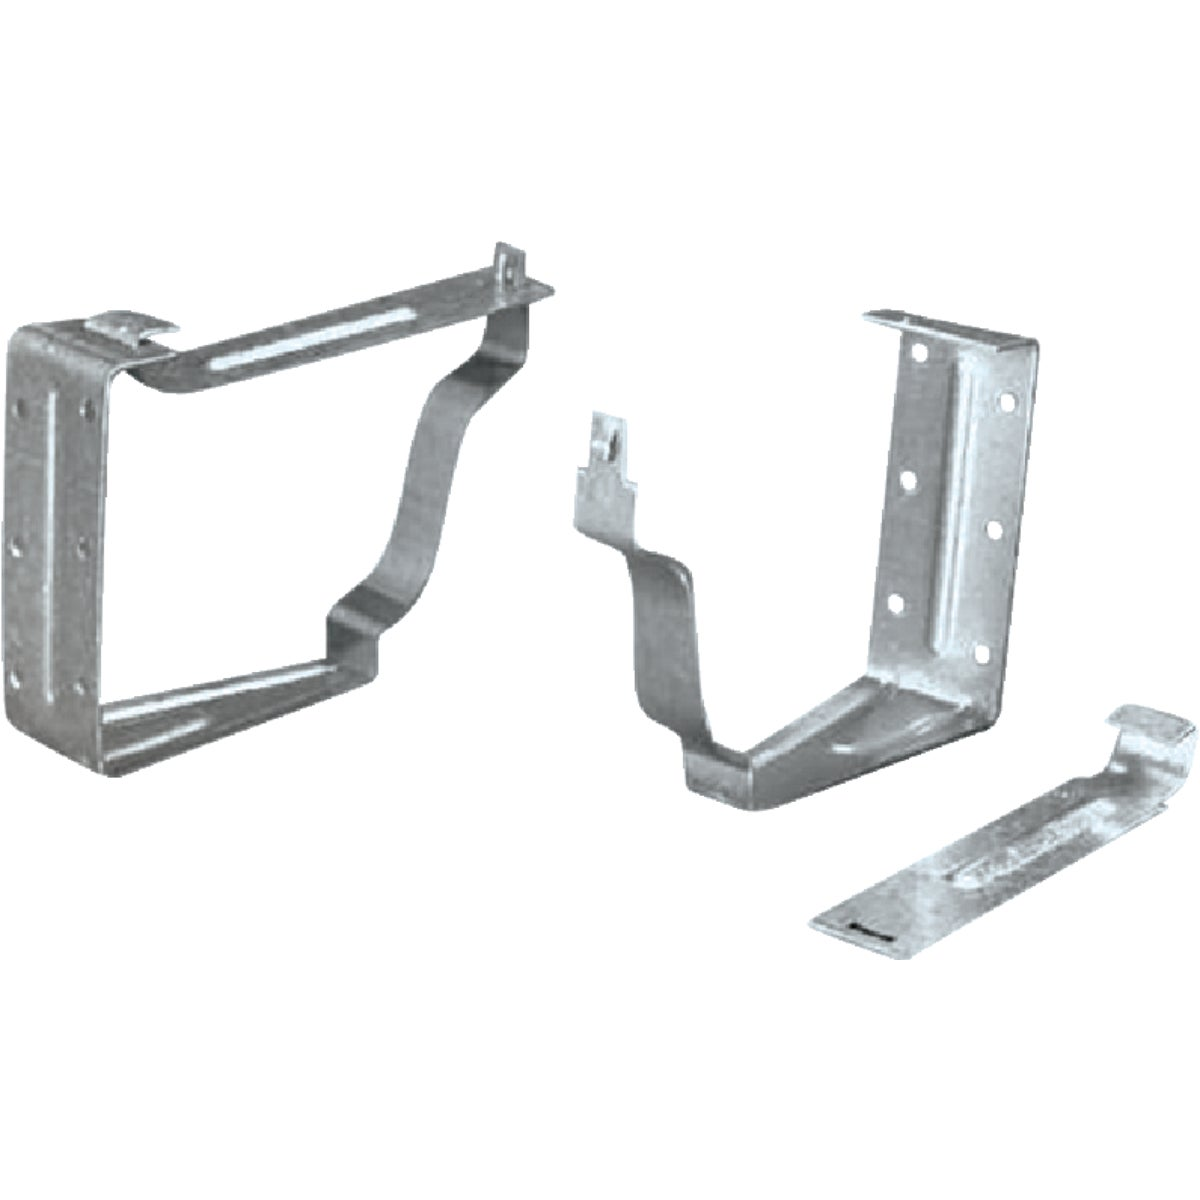 GALV SNAP LOK BRACKET - 29022 by Amerimax Home Prod